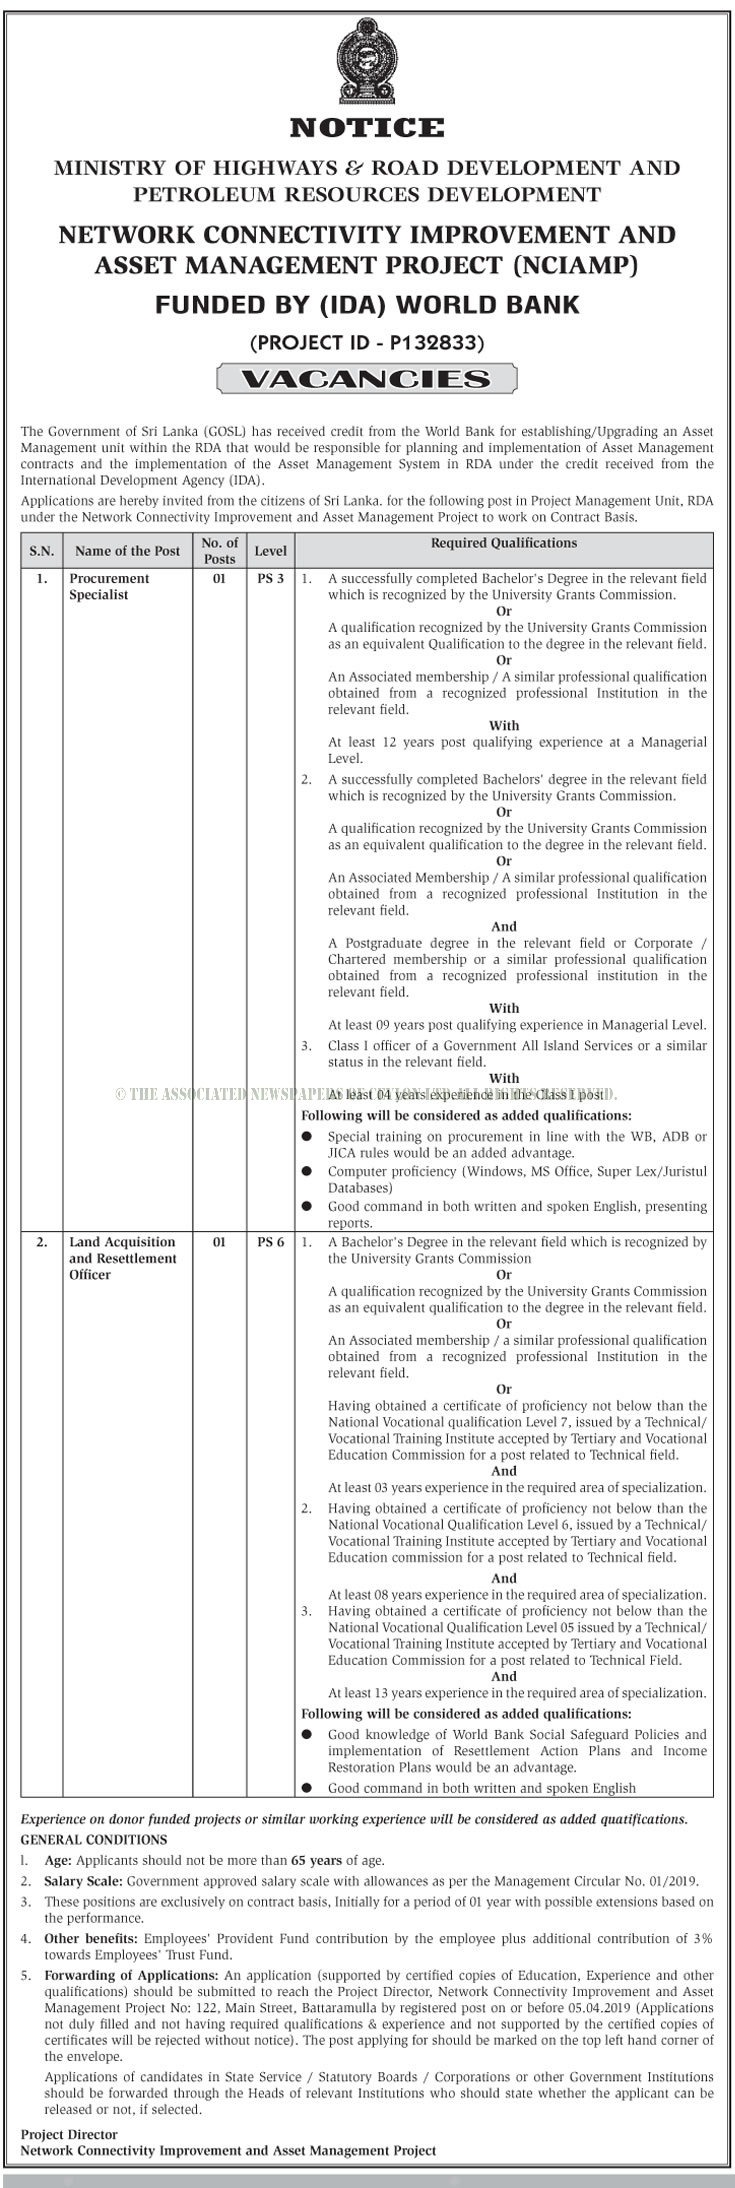 Procurement Specialist, Land Acquisition & Resettlement Officer - Ministry of Highways & Road Development and Petroleum Resources Development